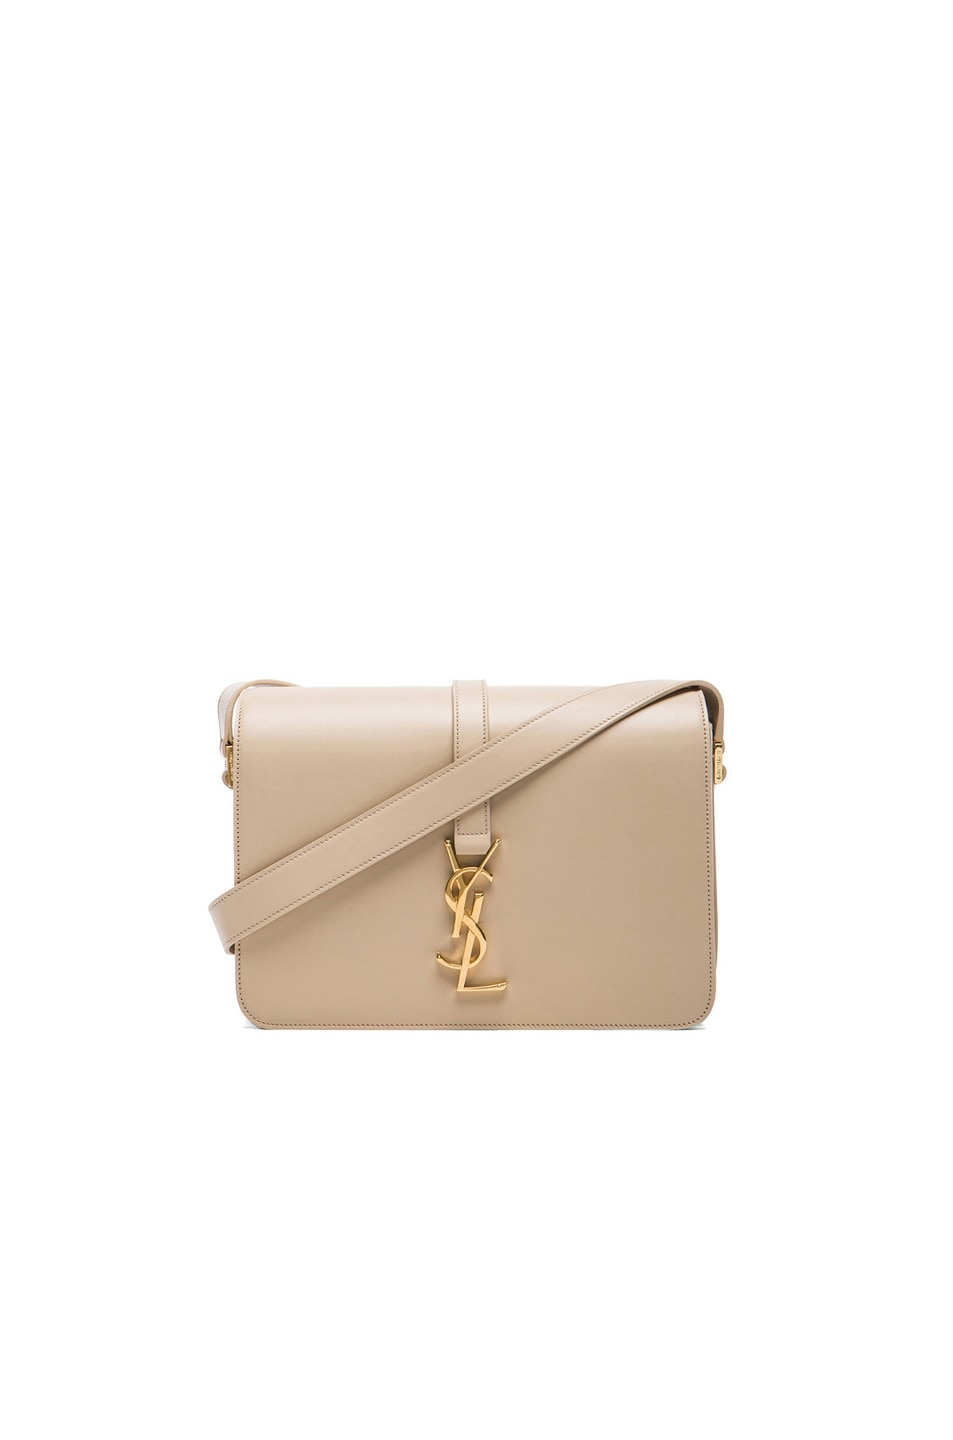 Image 1 of Saint Laurent Monogram Universite Bag in Powder